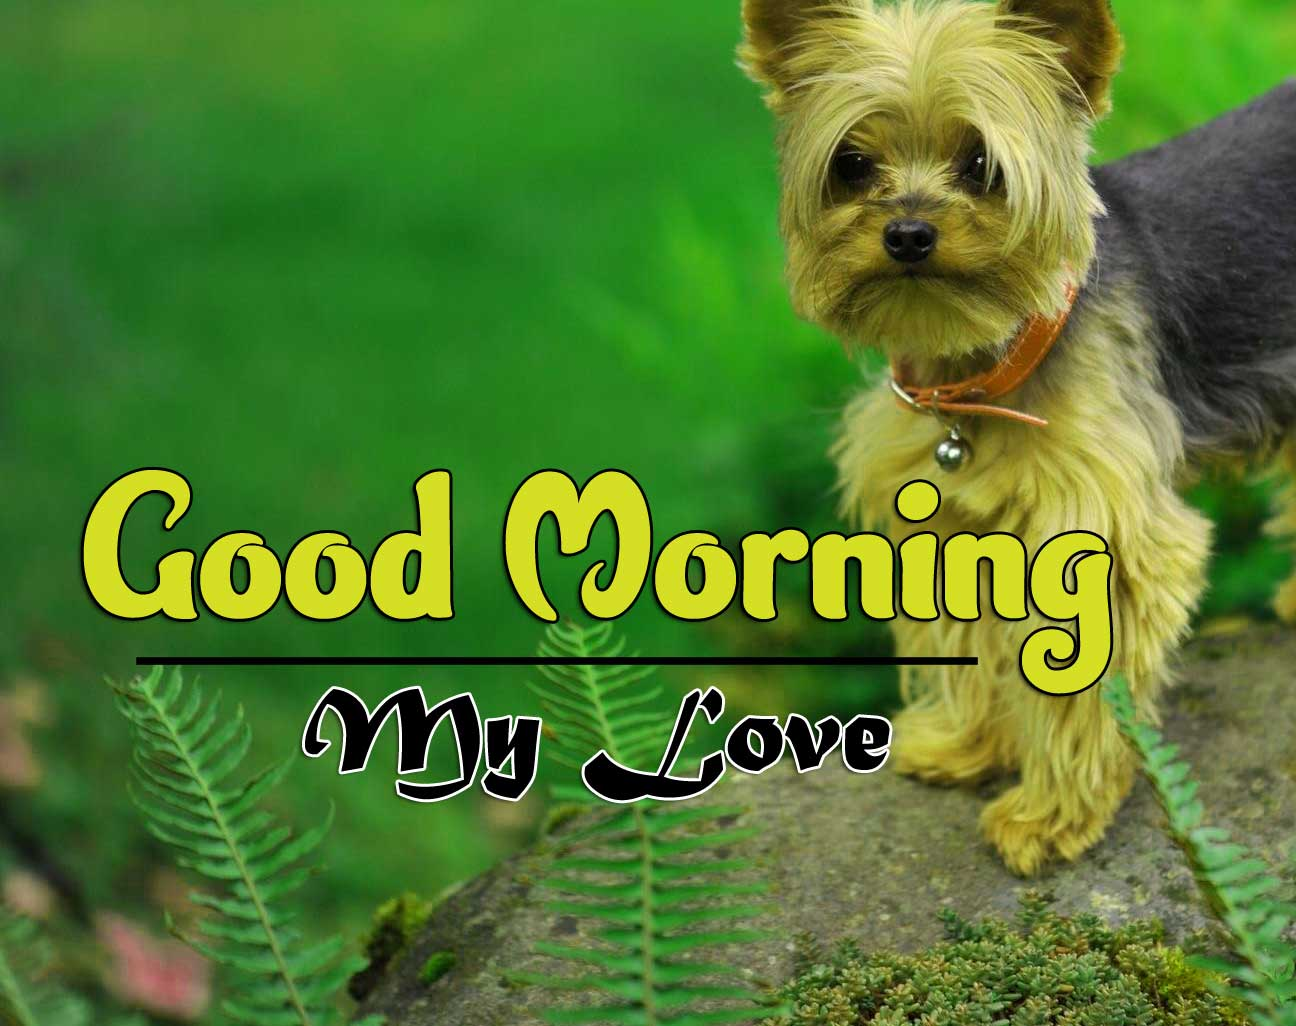 Cute Puppy Good Morning Pics Download for Whatsapp